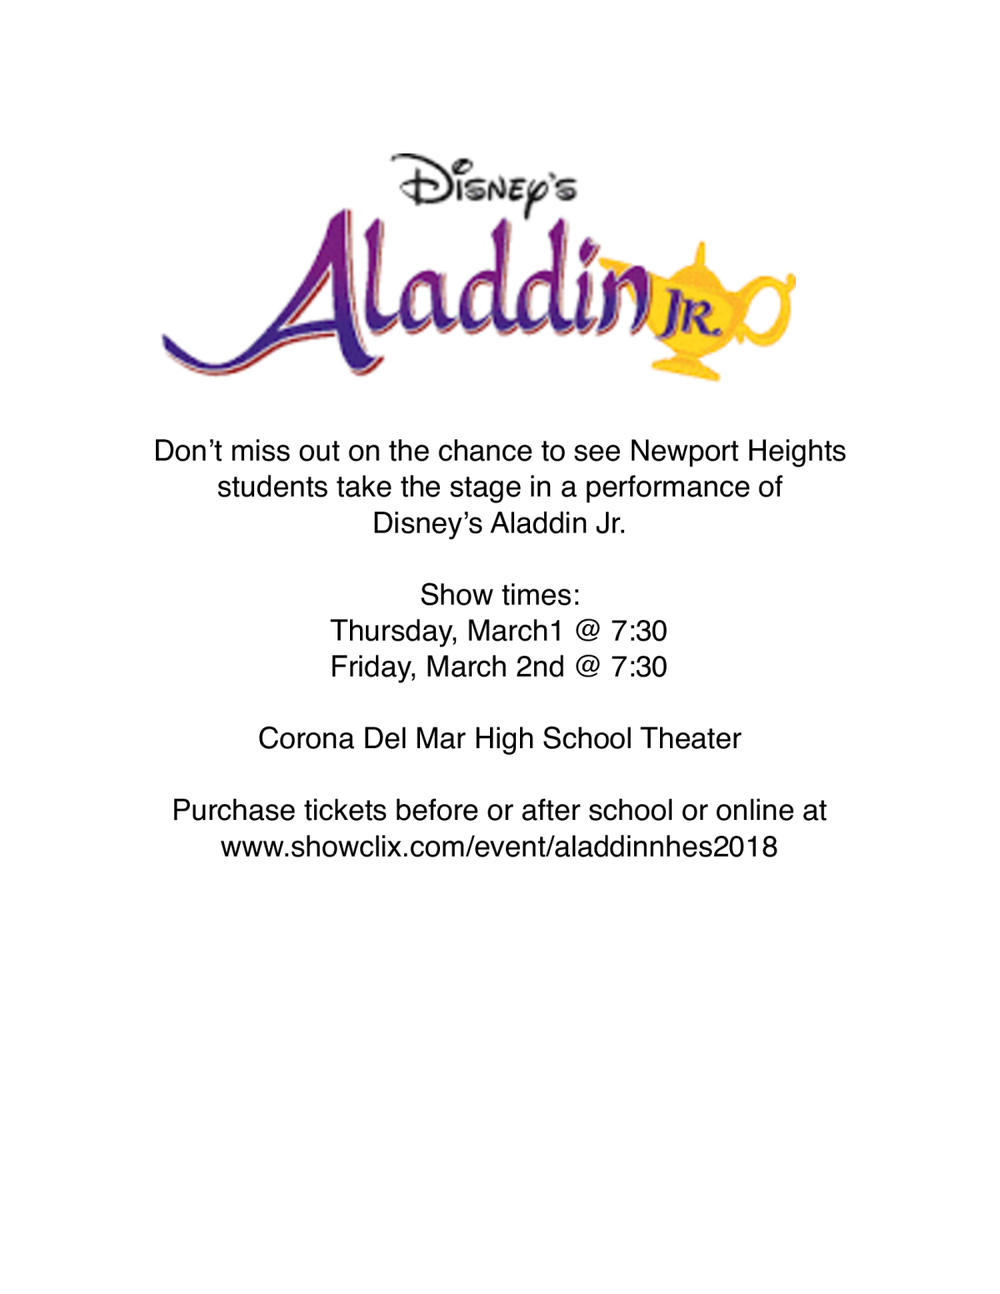 flier for Newport Heights Aladdin Jr.